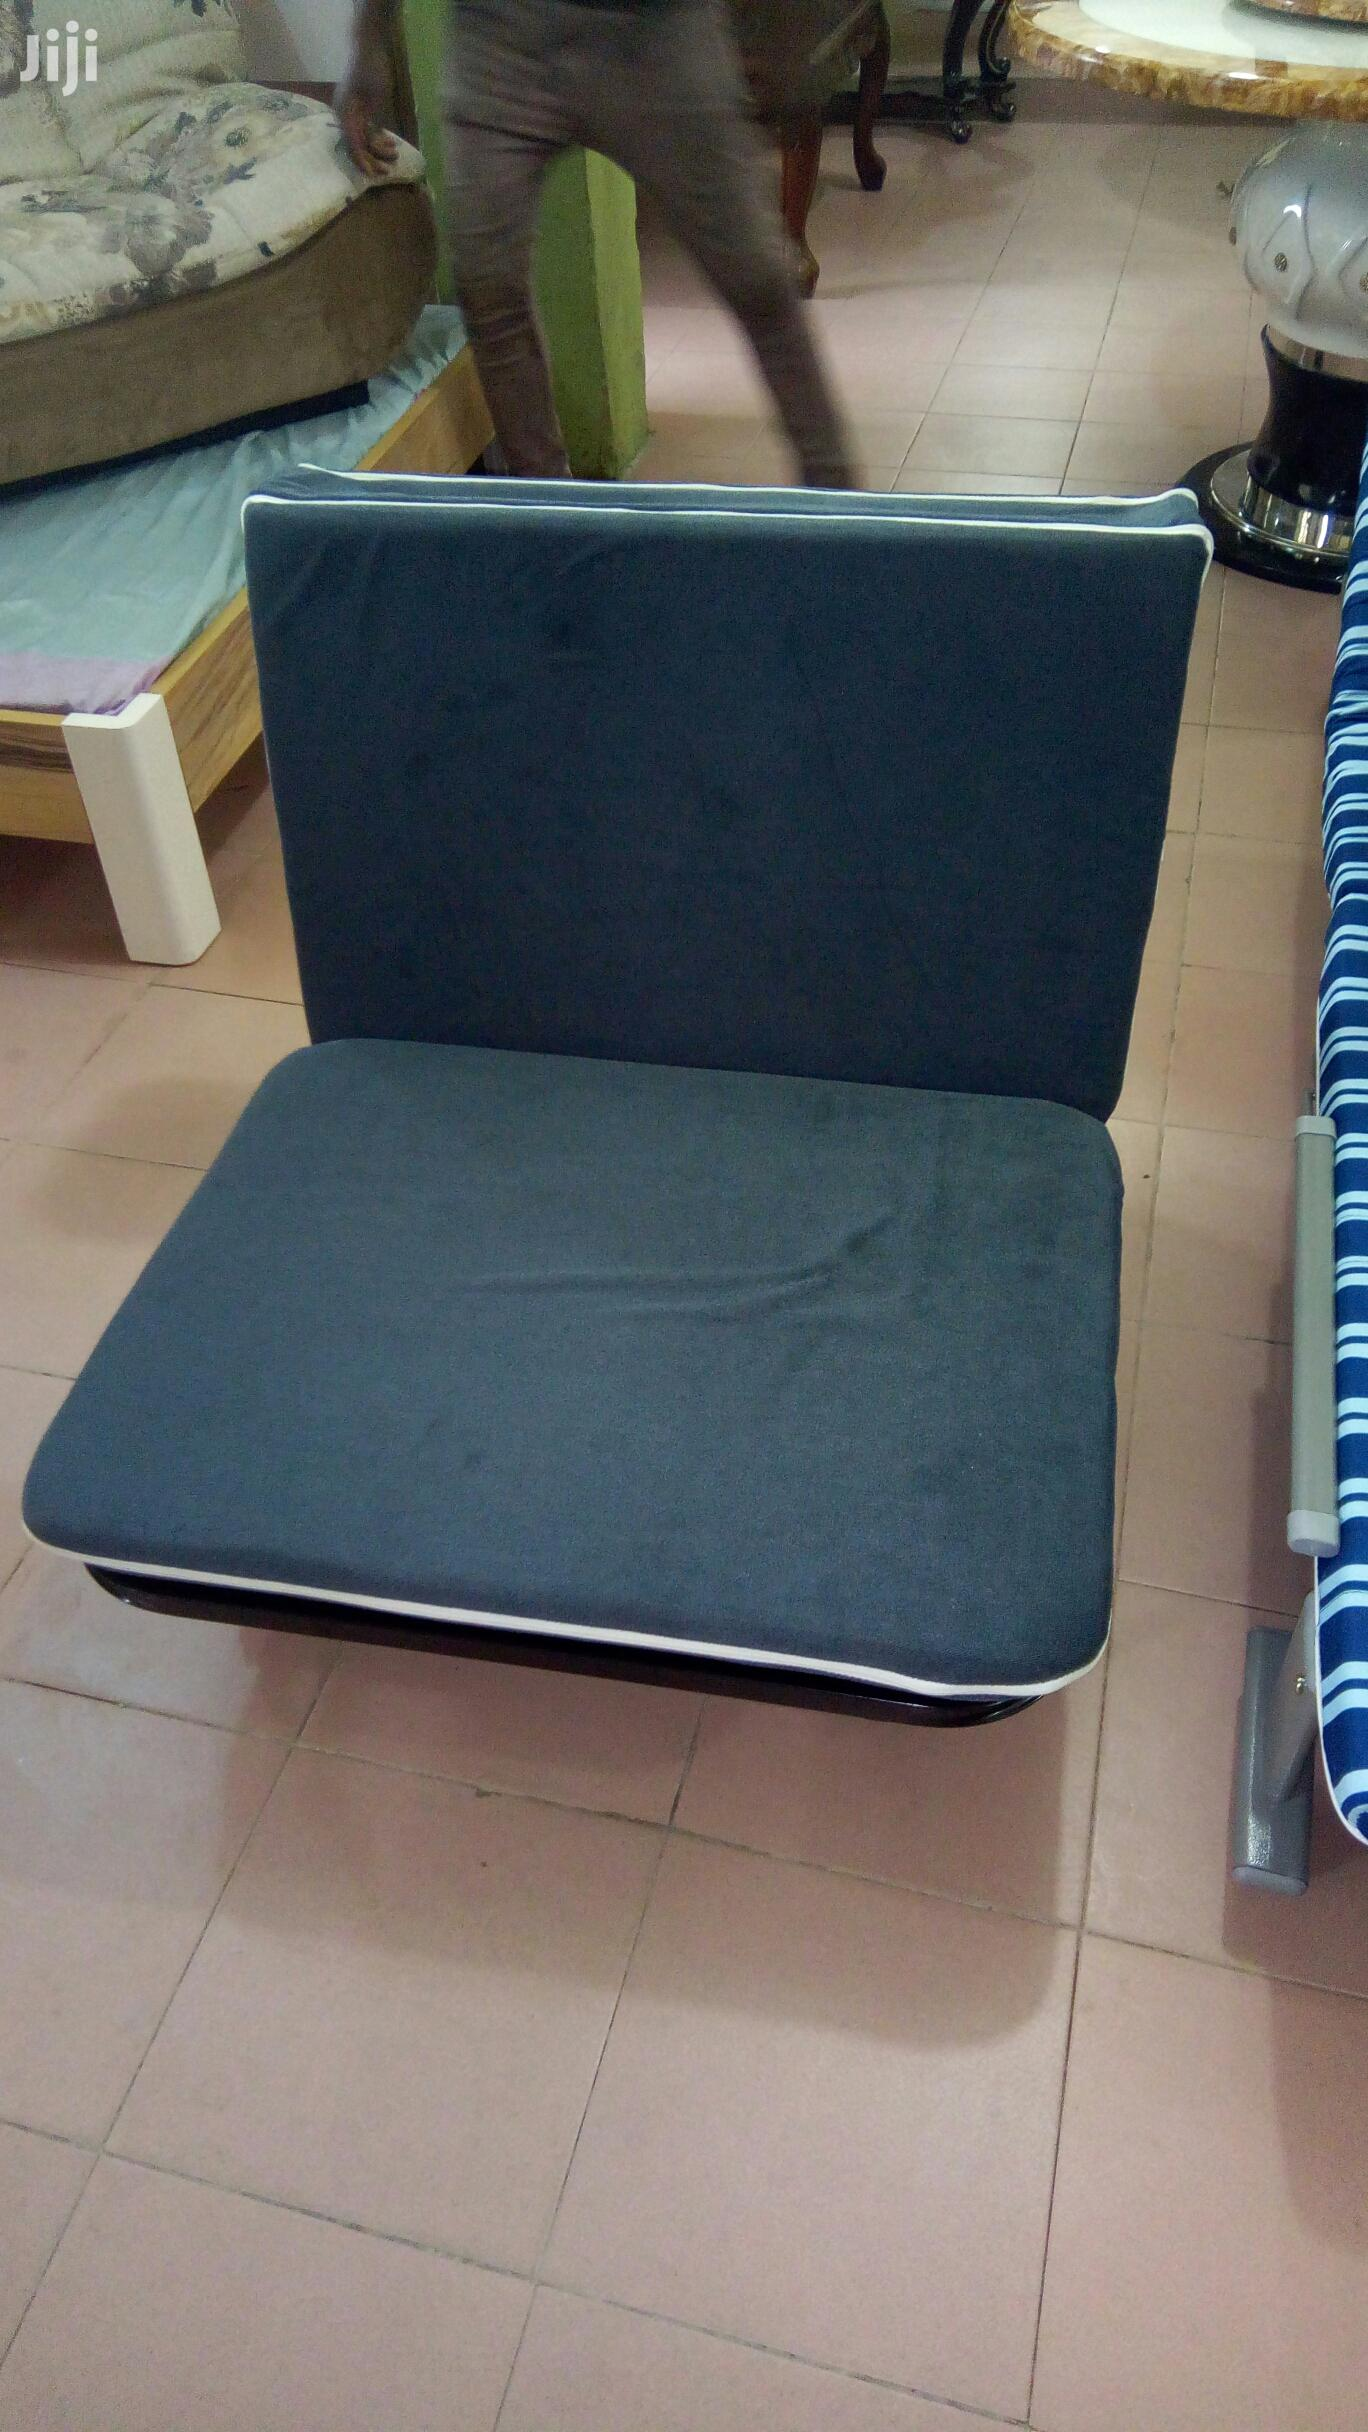 New Camp Bed Foldable | Camping Gear for sale in Ojo, Lagos State, Nigeria